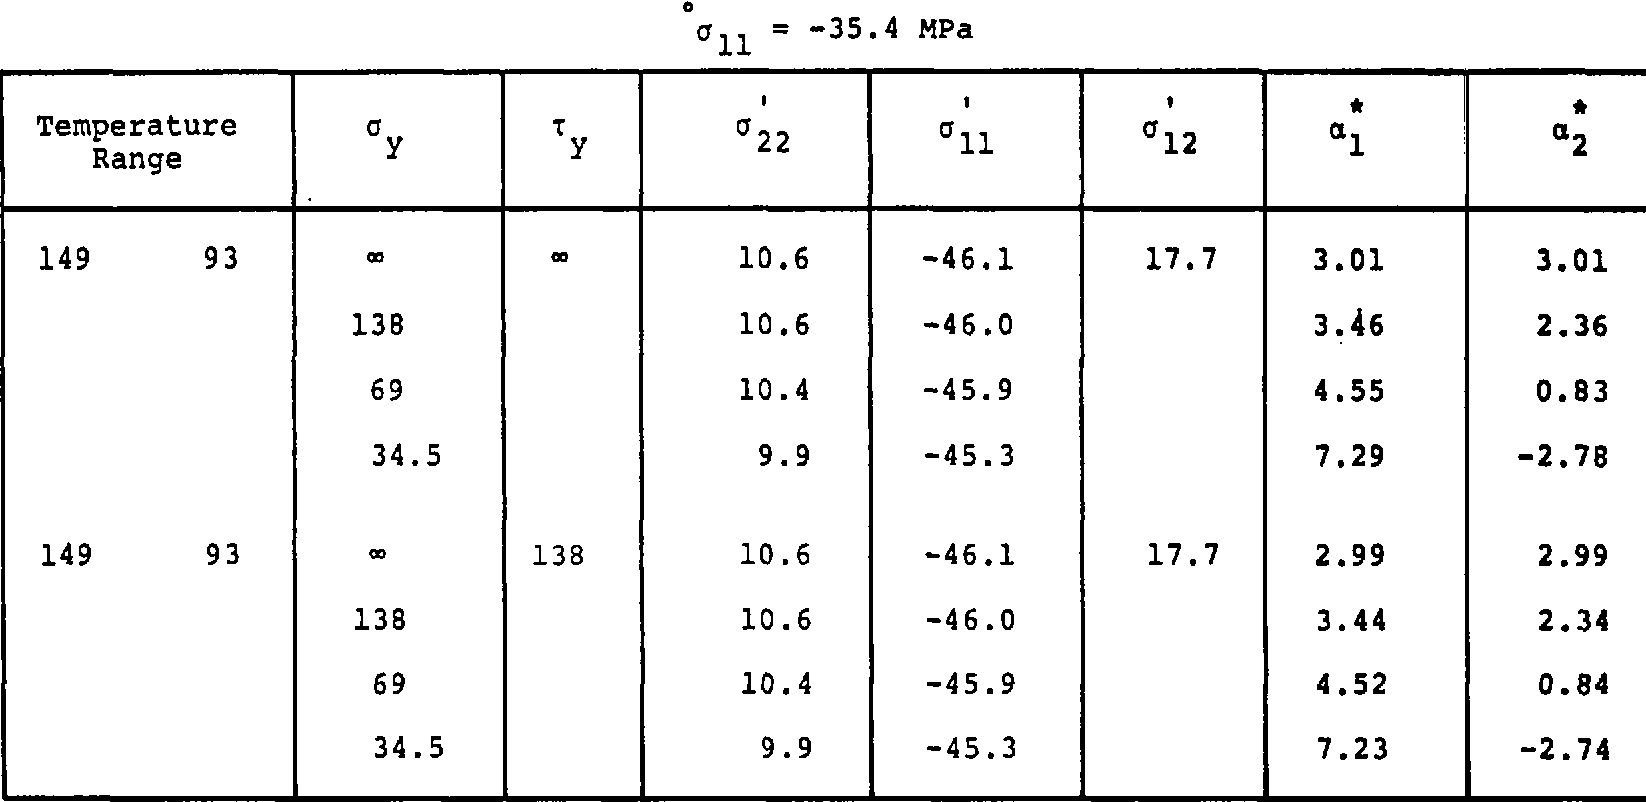 Table 10. Thermal Expansion Coefficients and Internal Stresses of _+4s